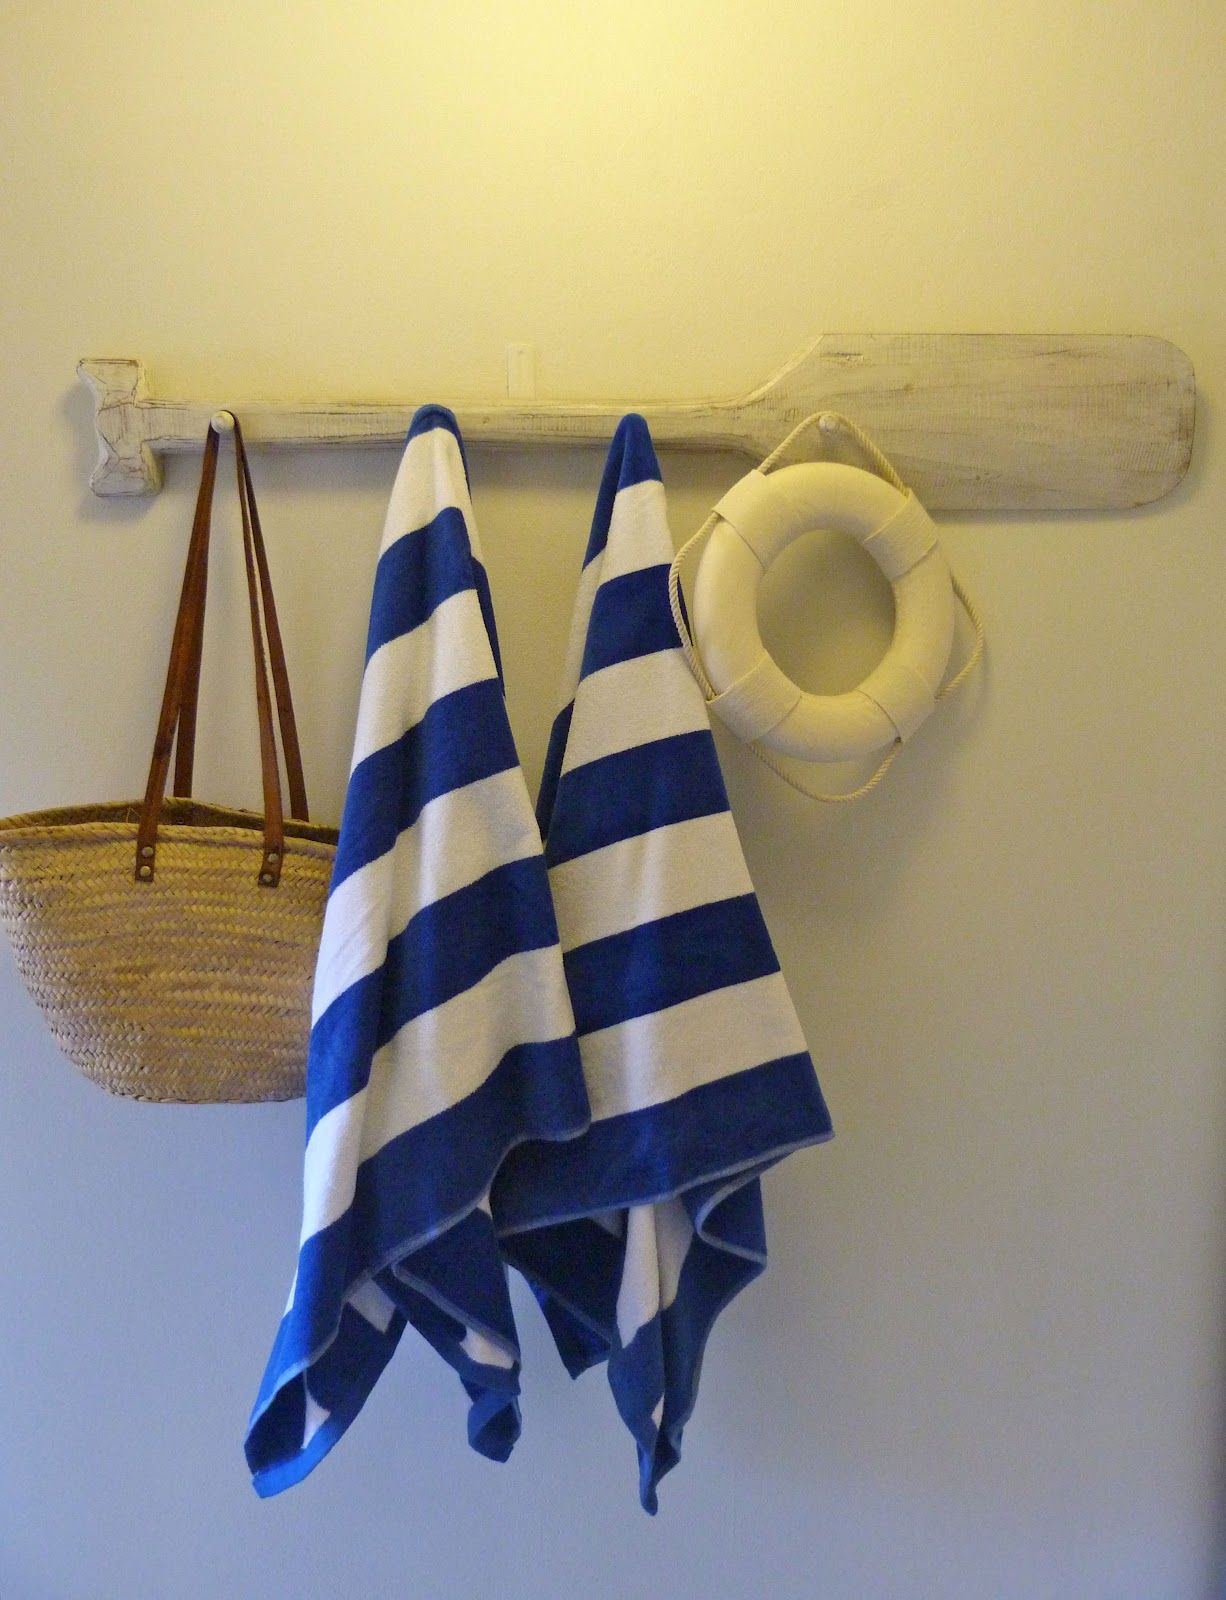 Badezimmer dekor landhausstil beachcomber coastal stripes  ellada greece i love  pinterest